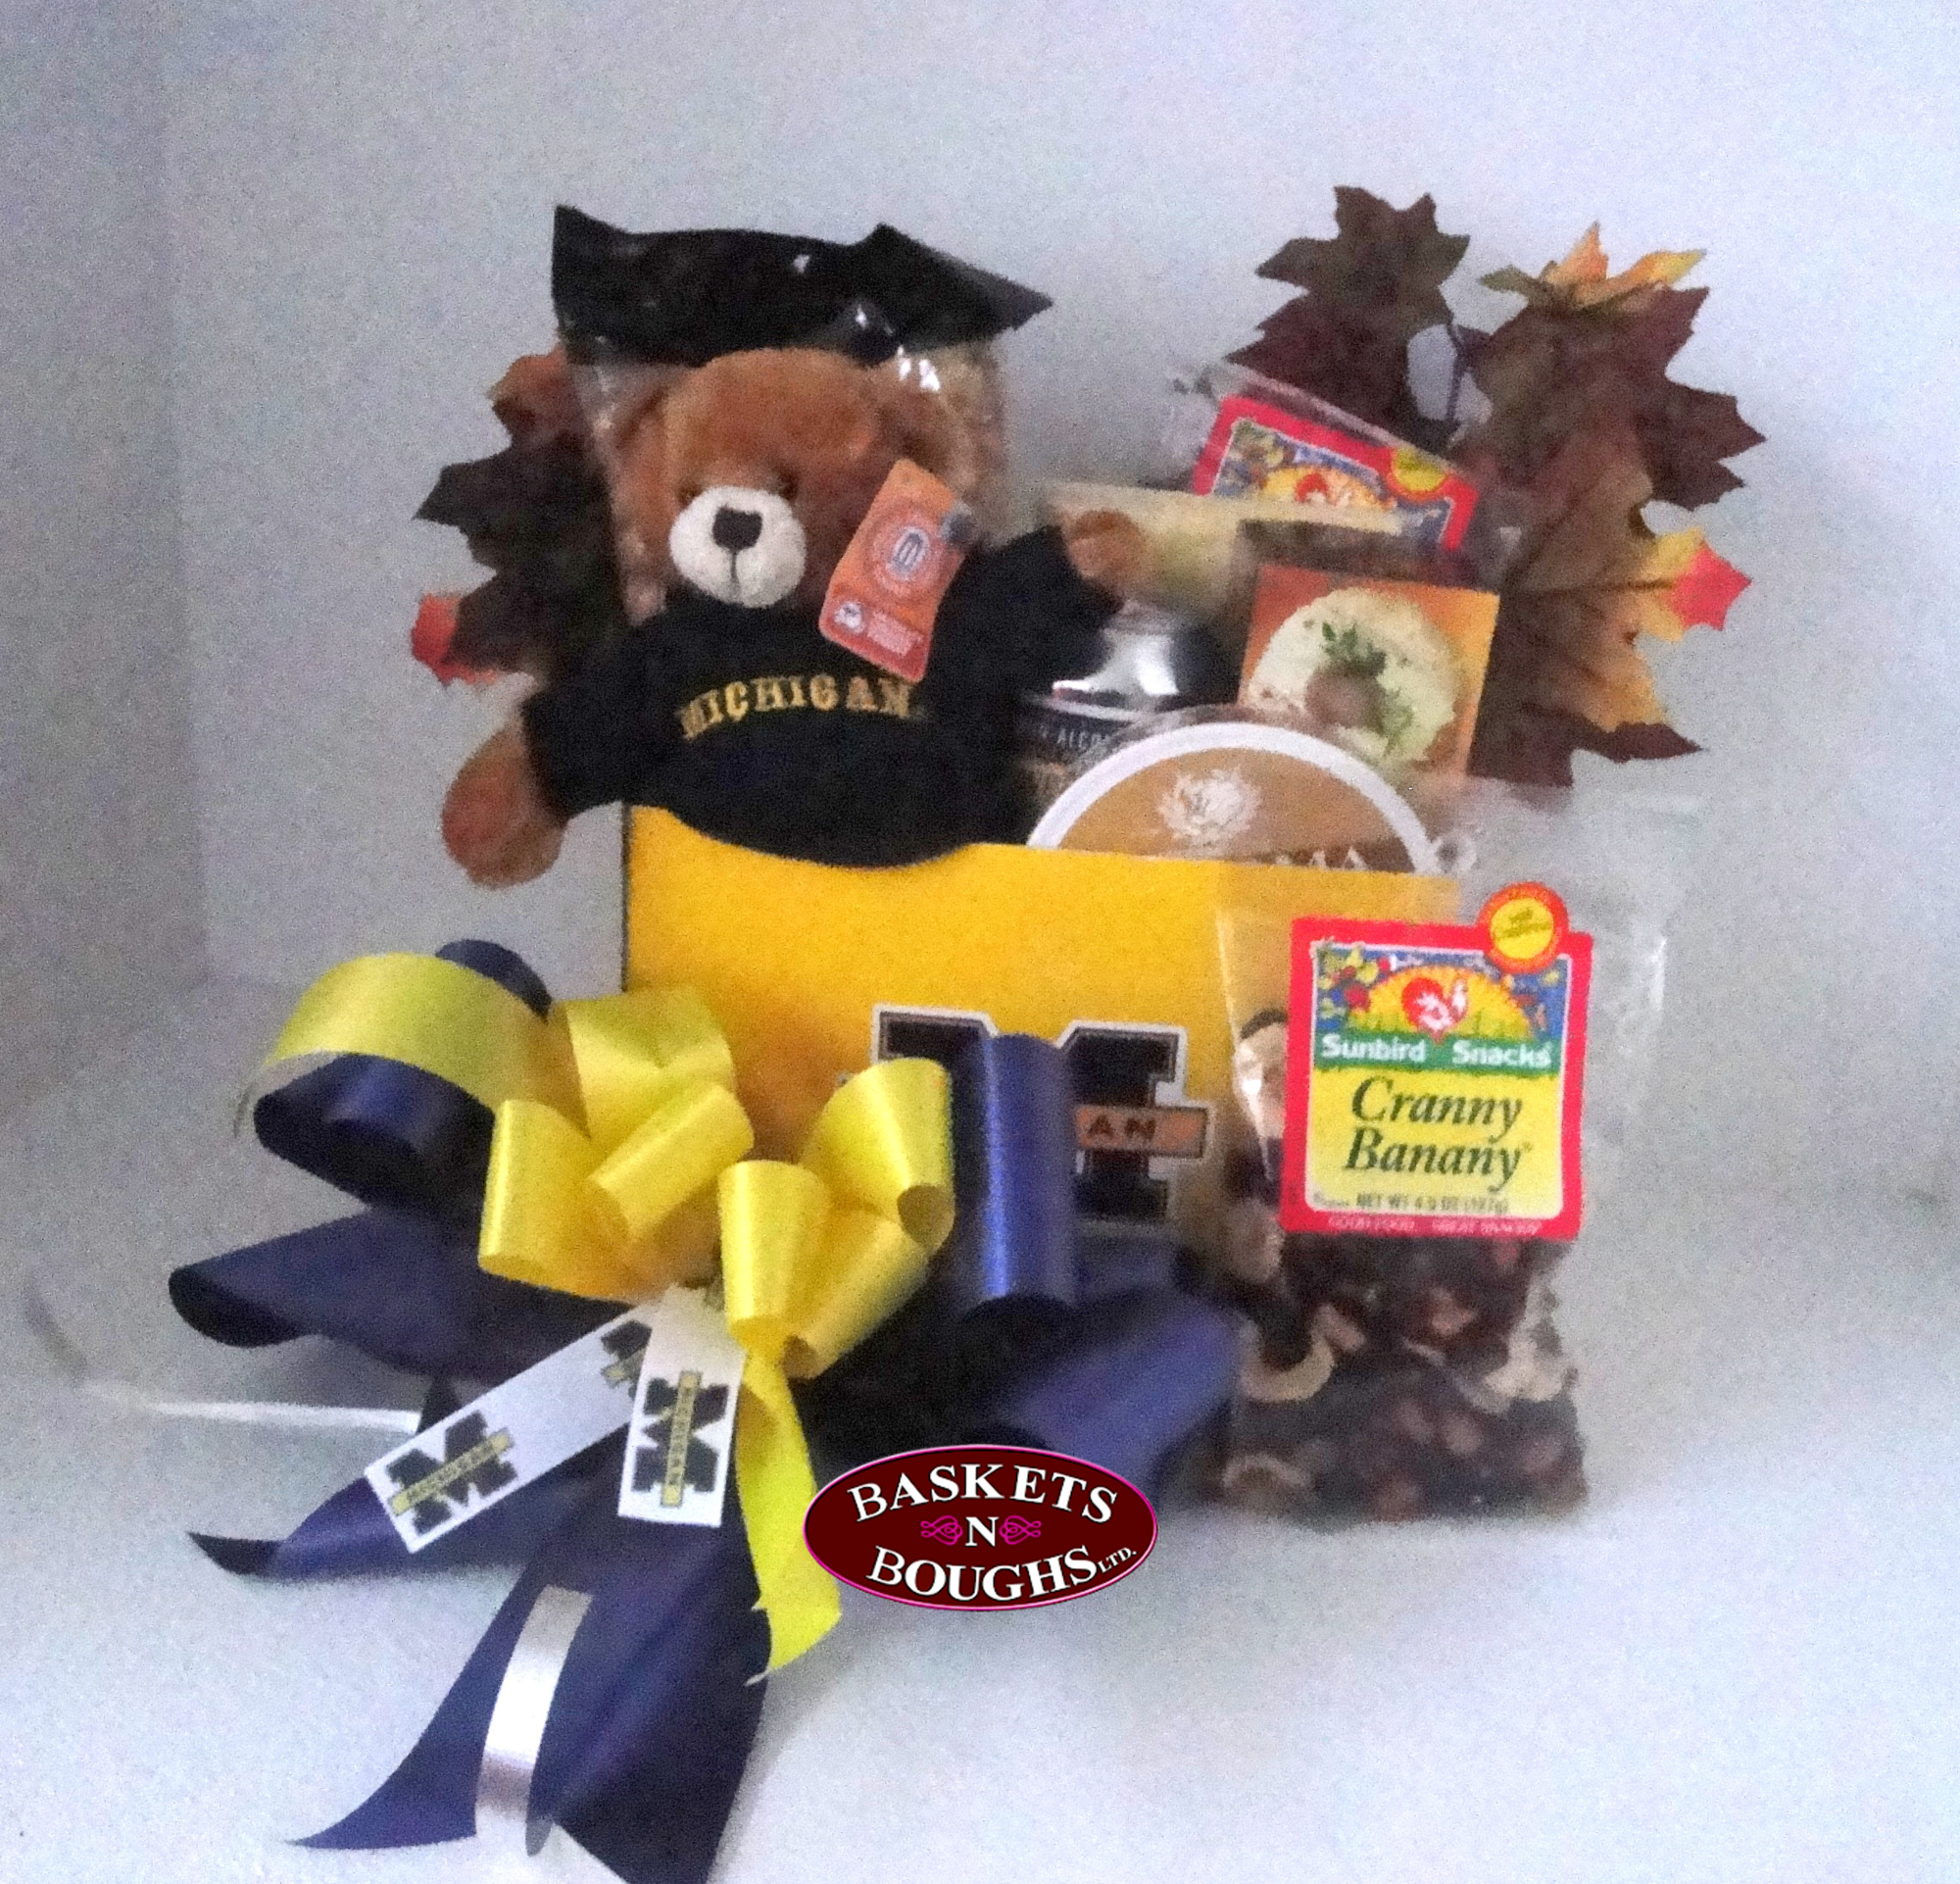 Michigan Football Gift Basket Box